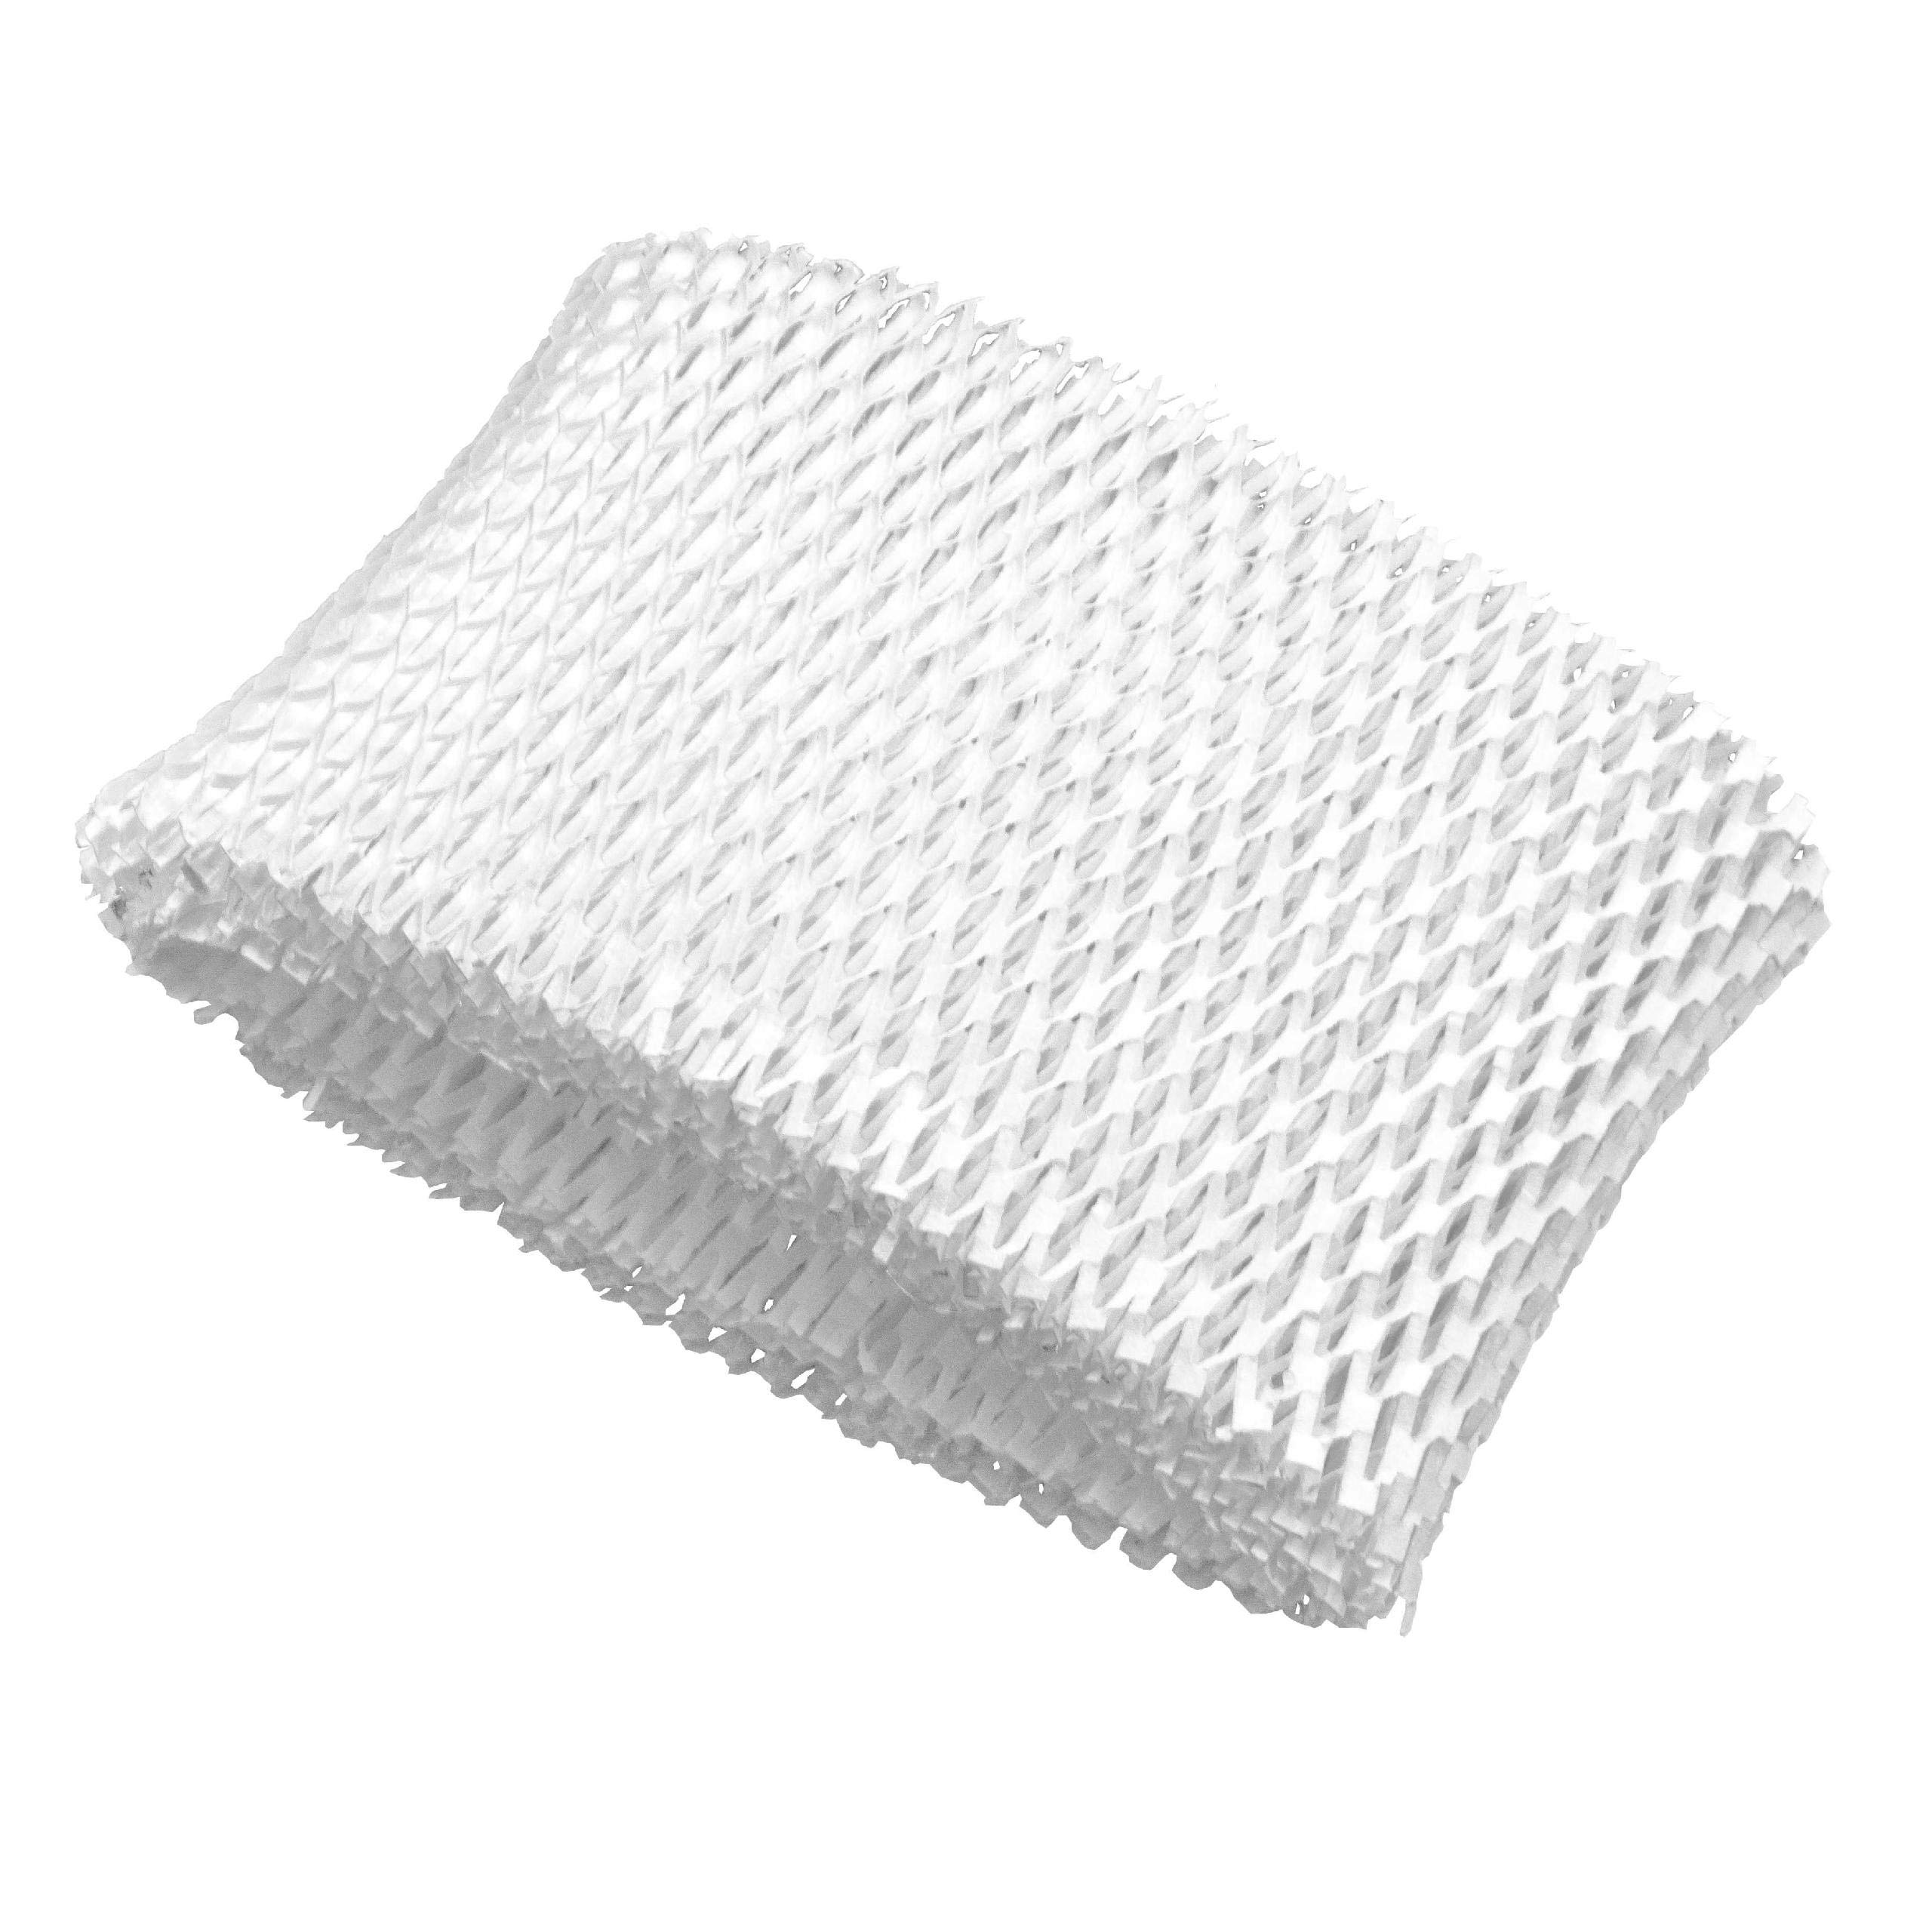 vhbw replacement air filter 20,5 x 13 x 4,5cm white for